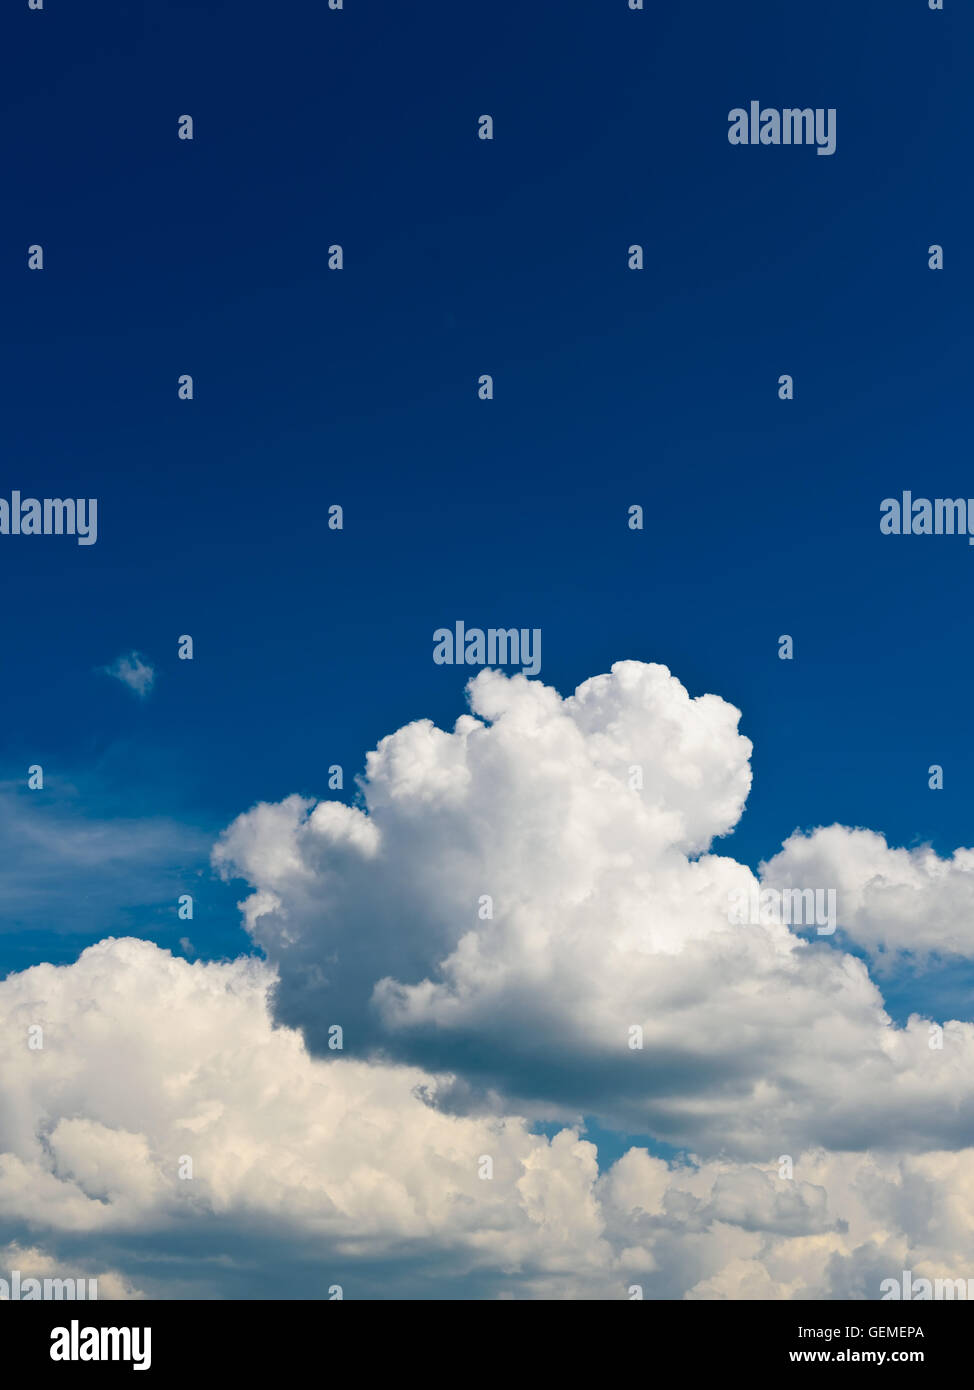 blue sky with beautiful white clouds - Stock Image